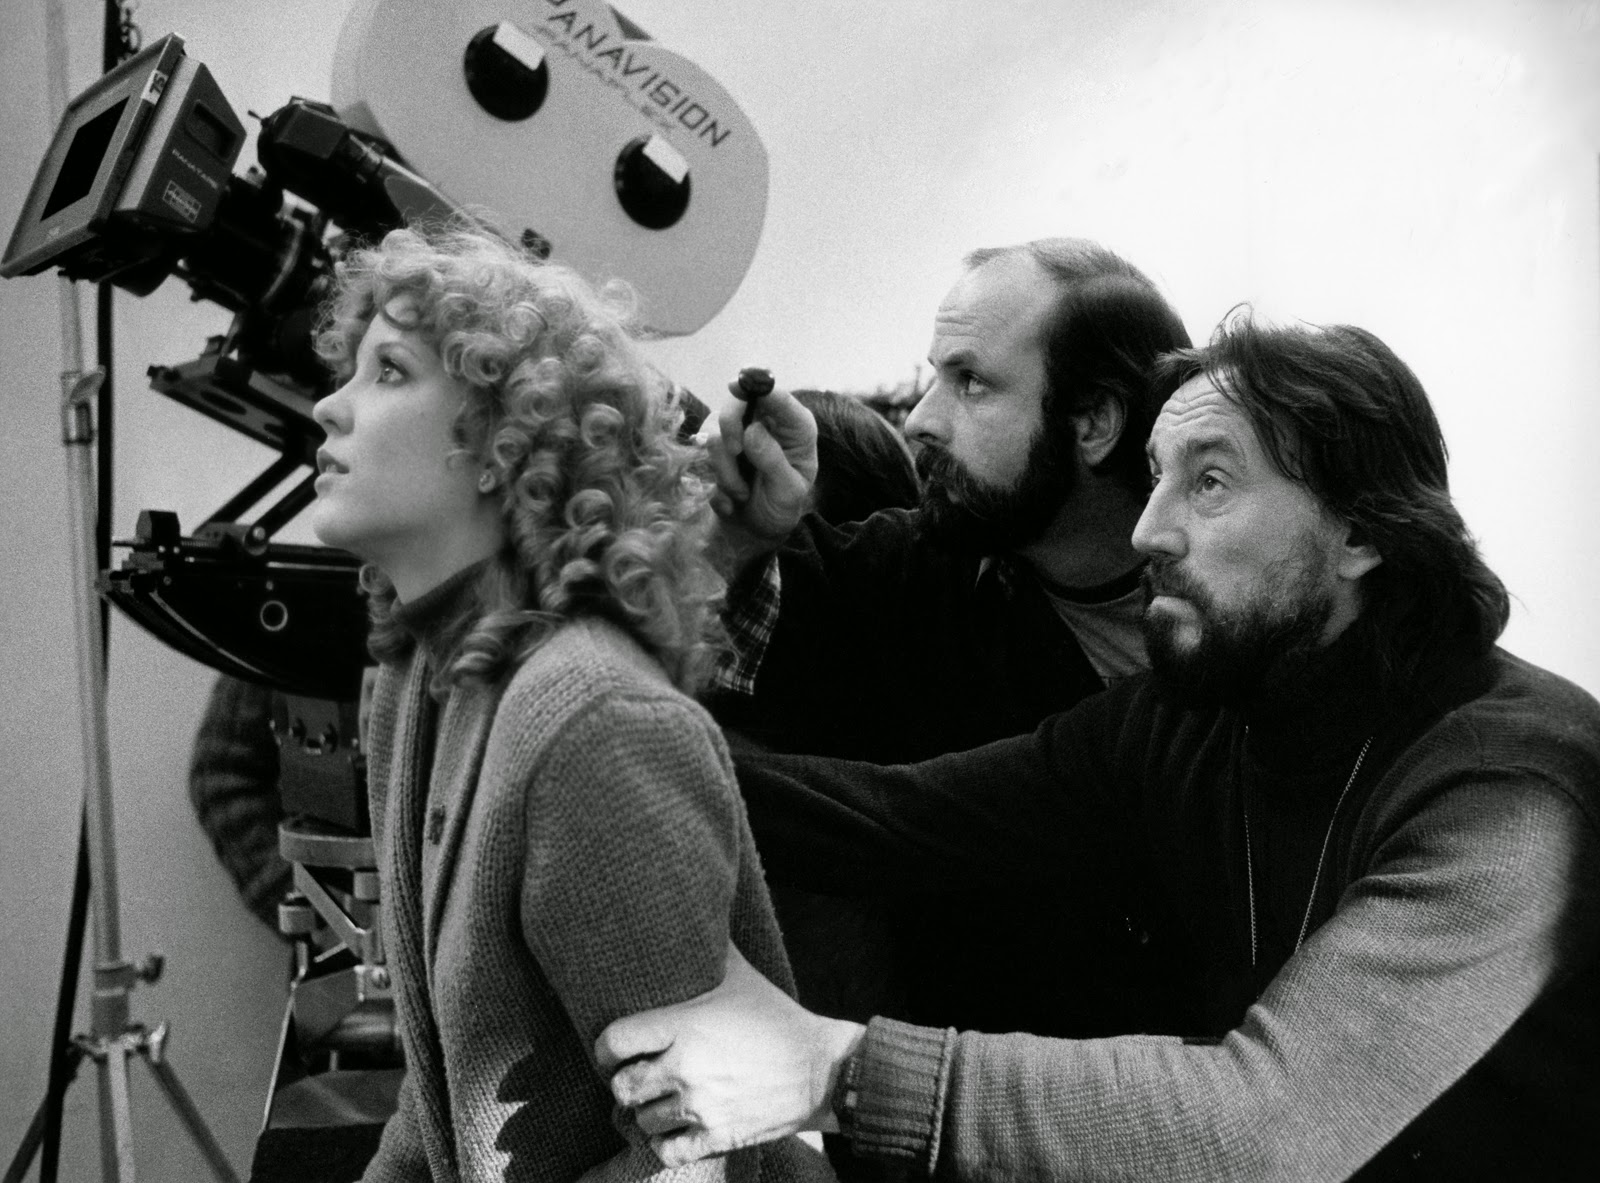 From left: Actress Nancy Allen, 1st AC Michael Gershman and Zsigmond on set for Blow Out.